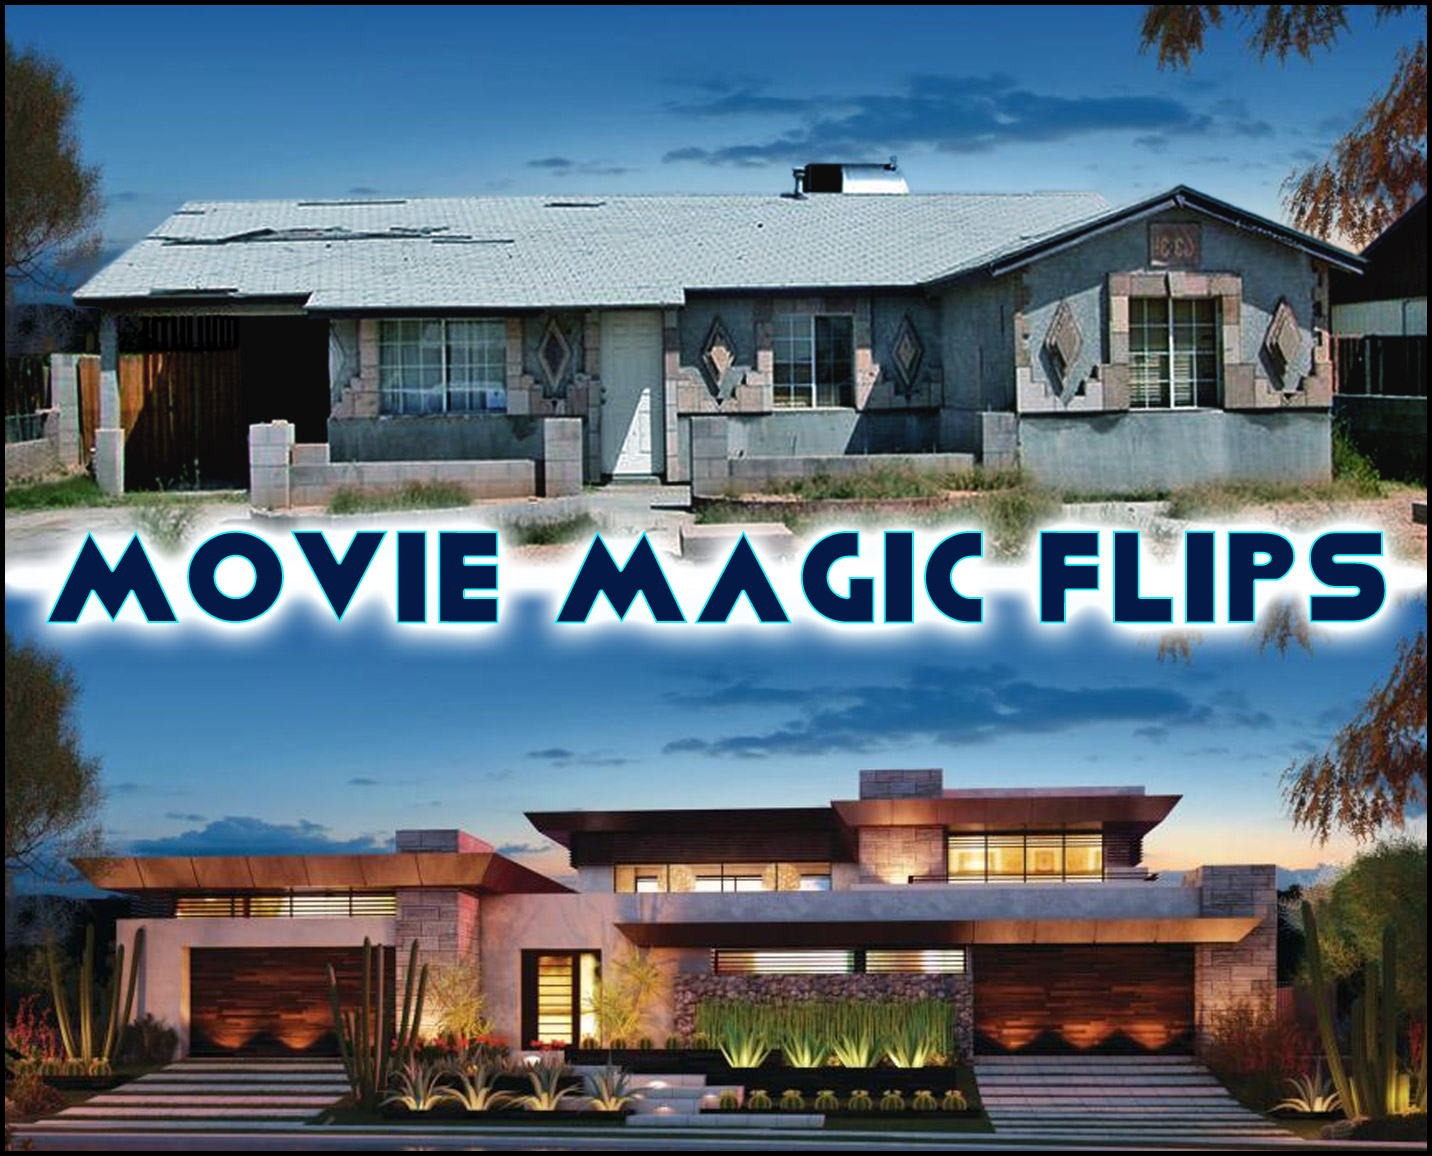 Movie-Magic-Flips-logo-flat